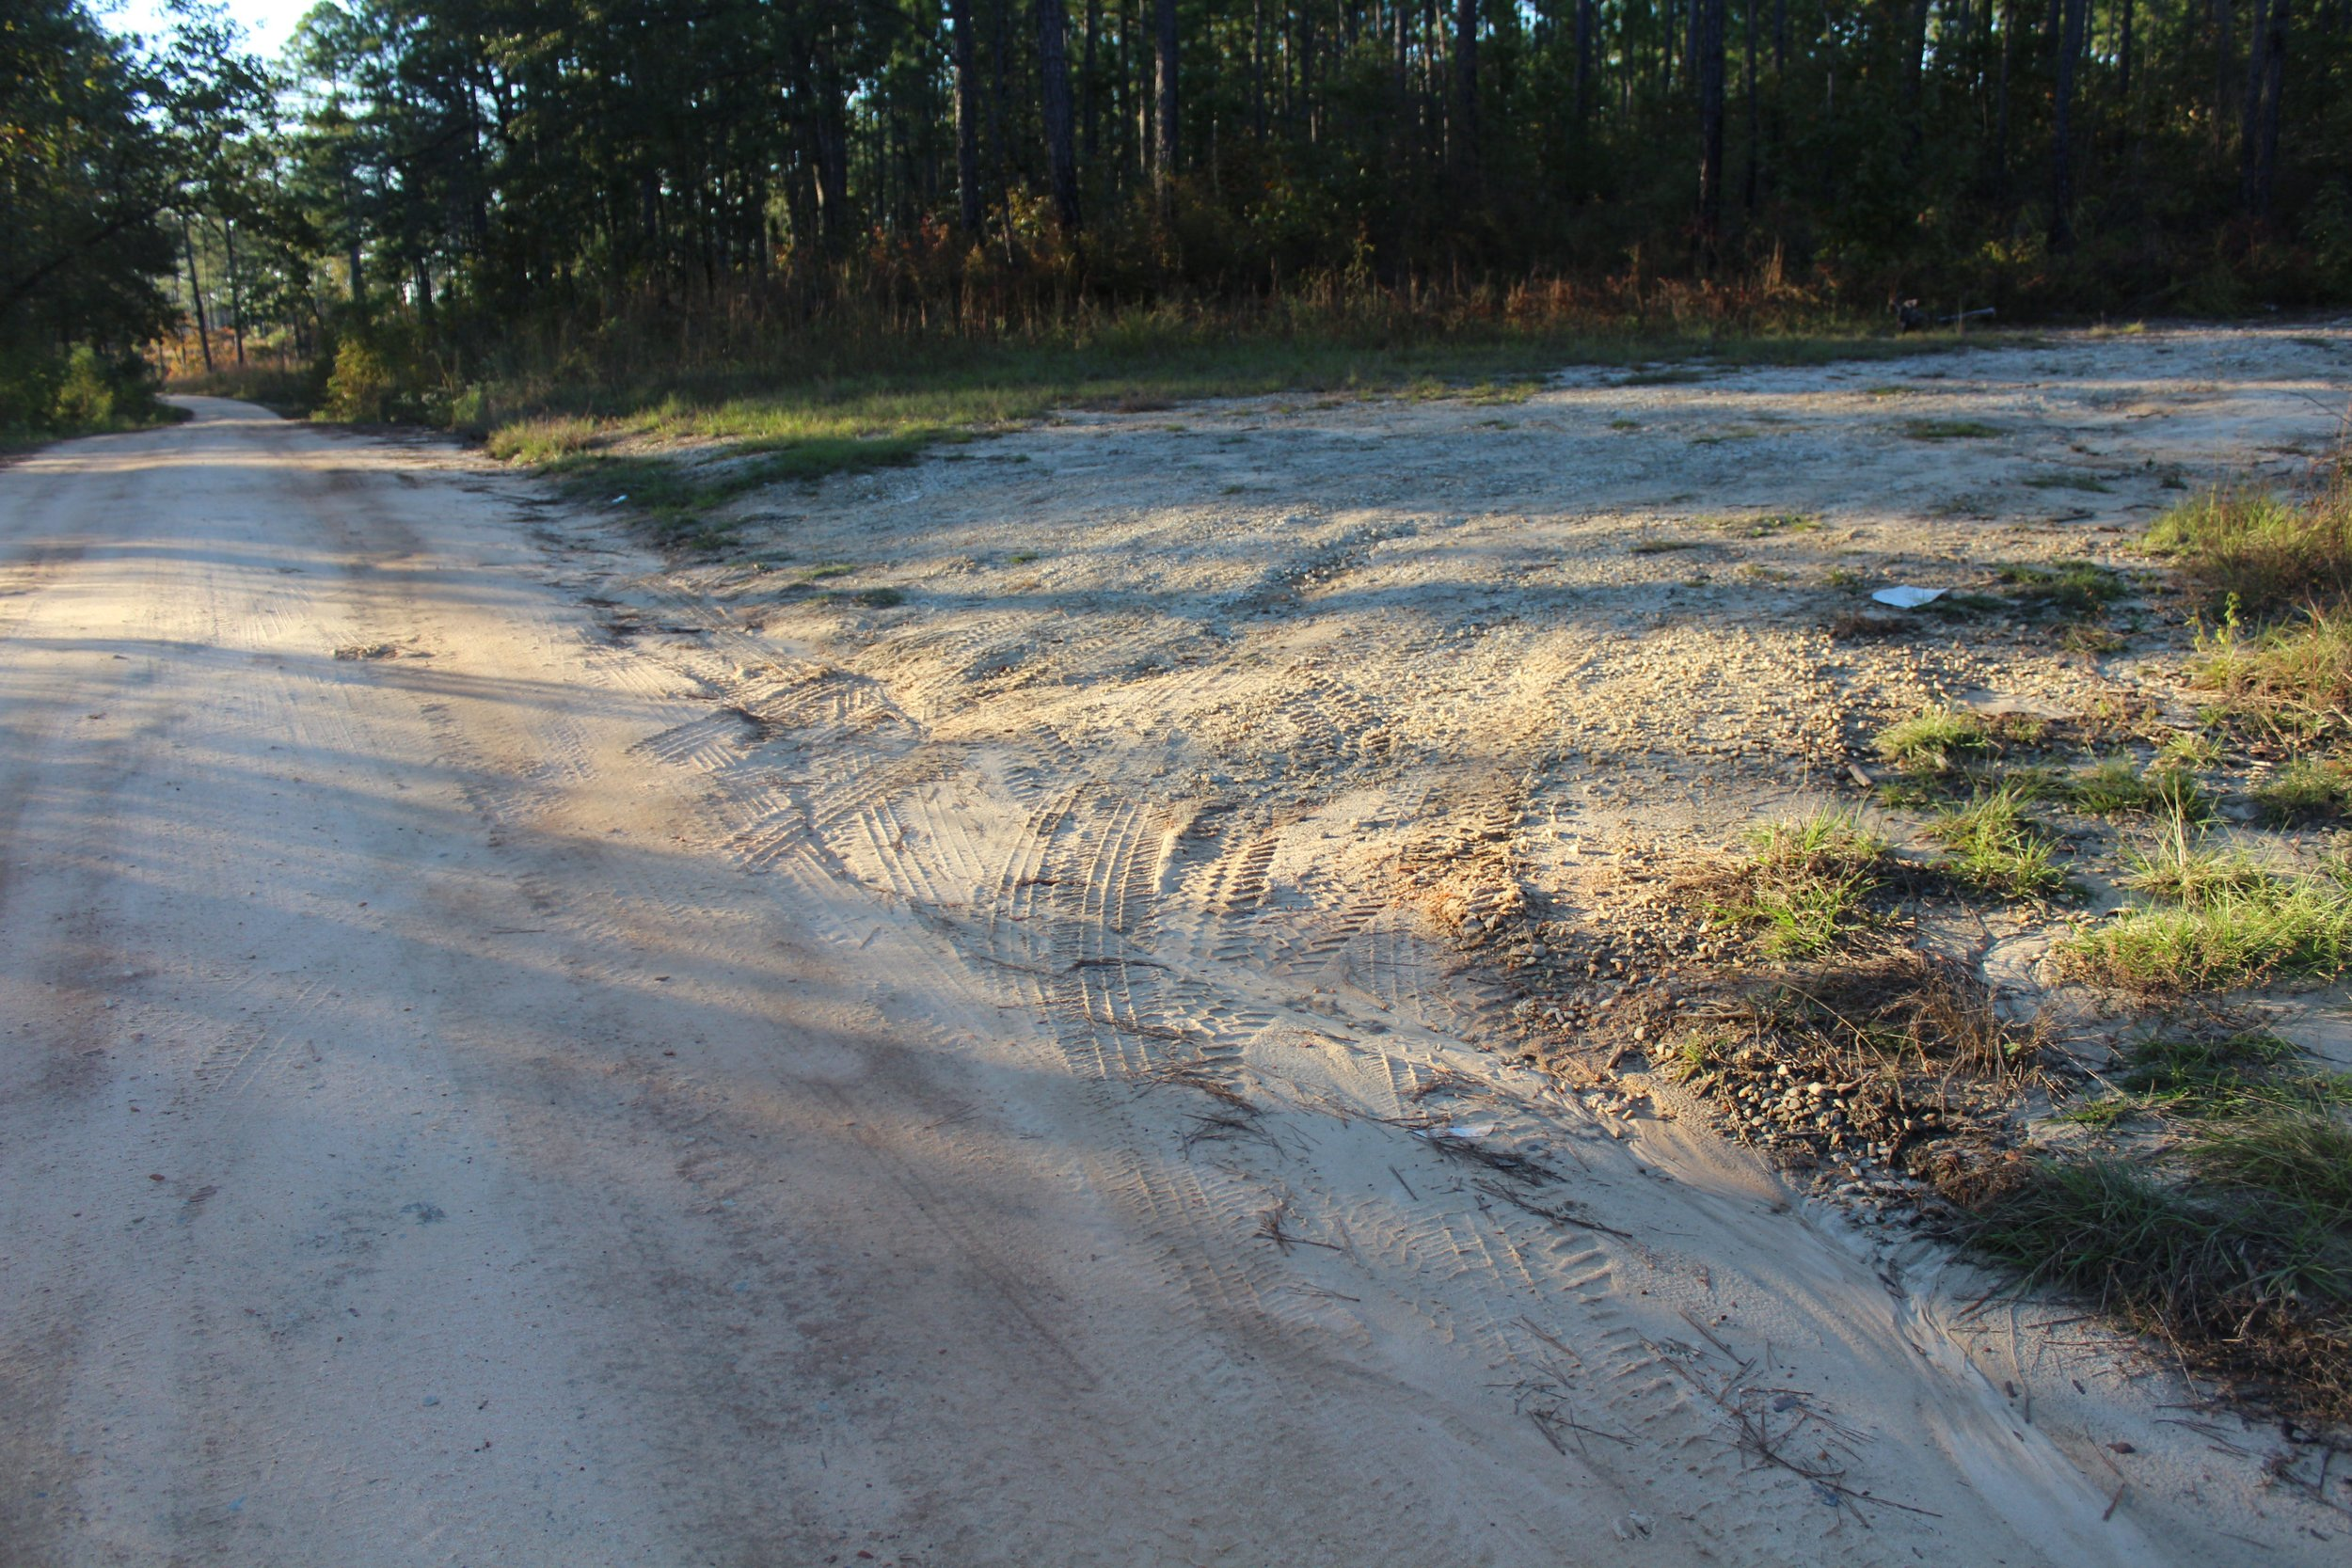 Clear evidence of a well used trailhead.